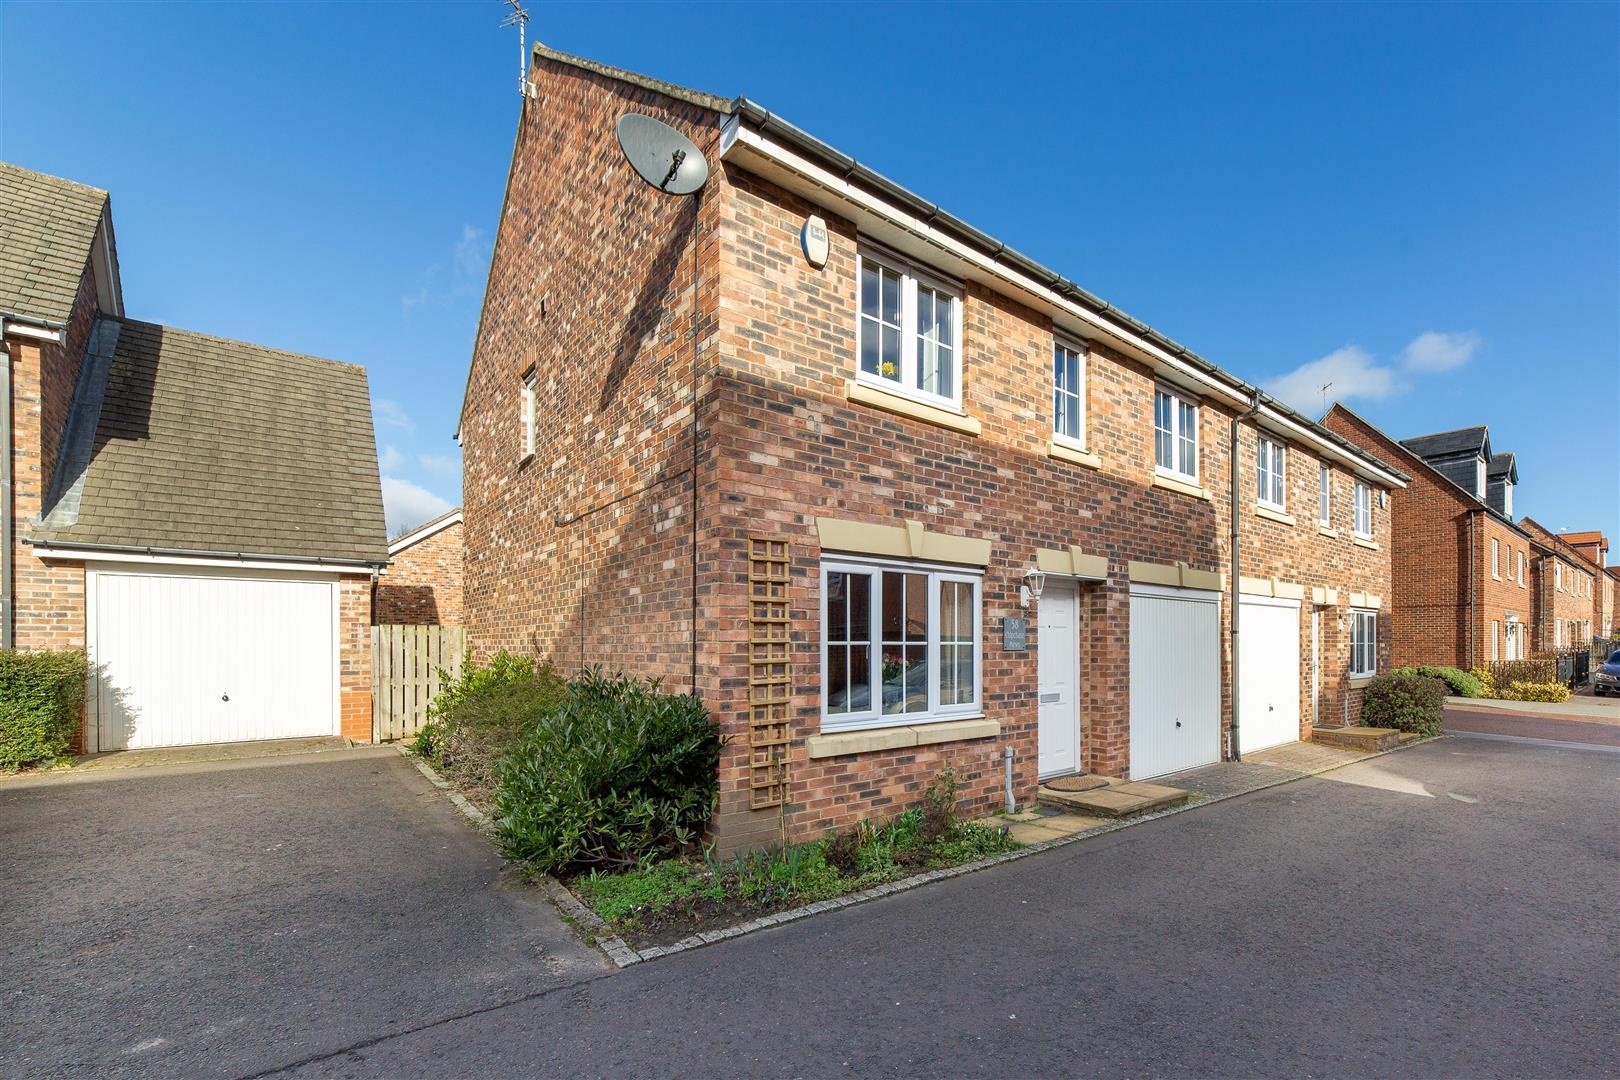 4 bed semi-detached house for sale in Chipchase Mews, Great Park, NE3